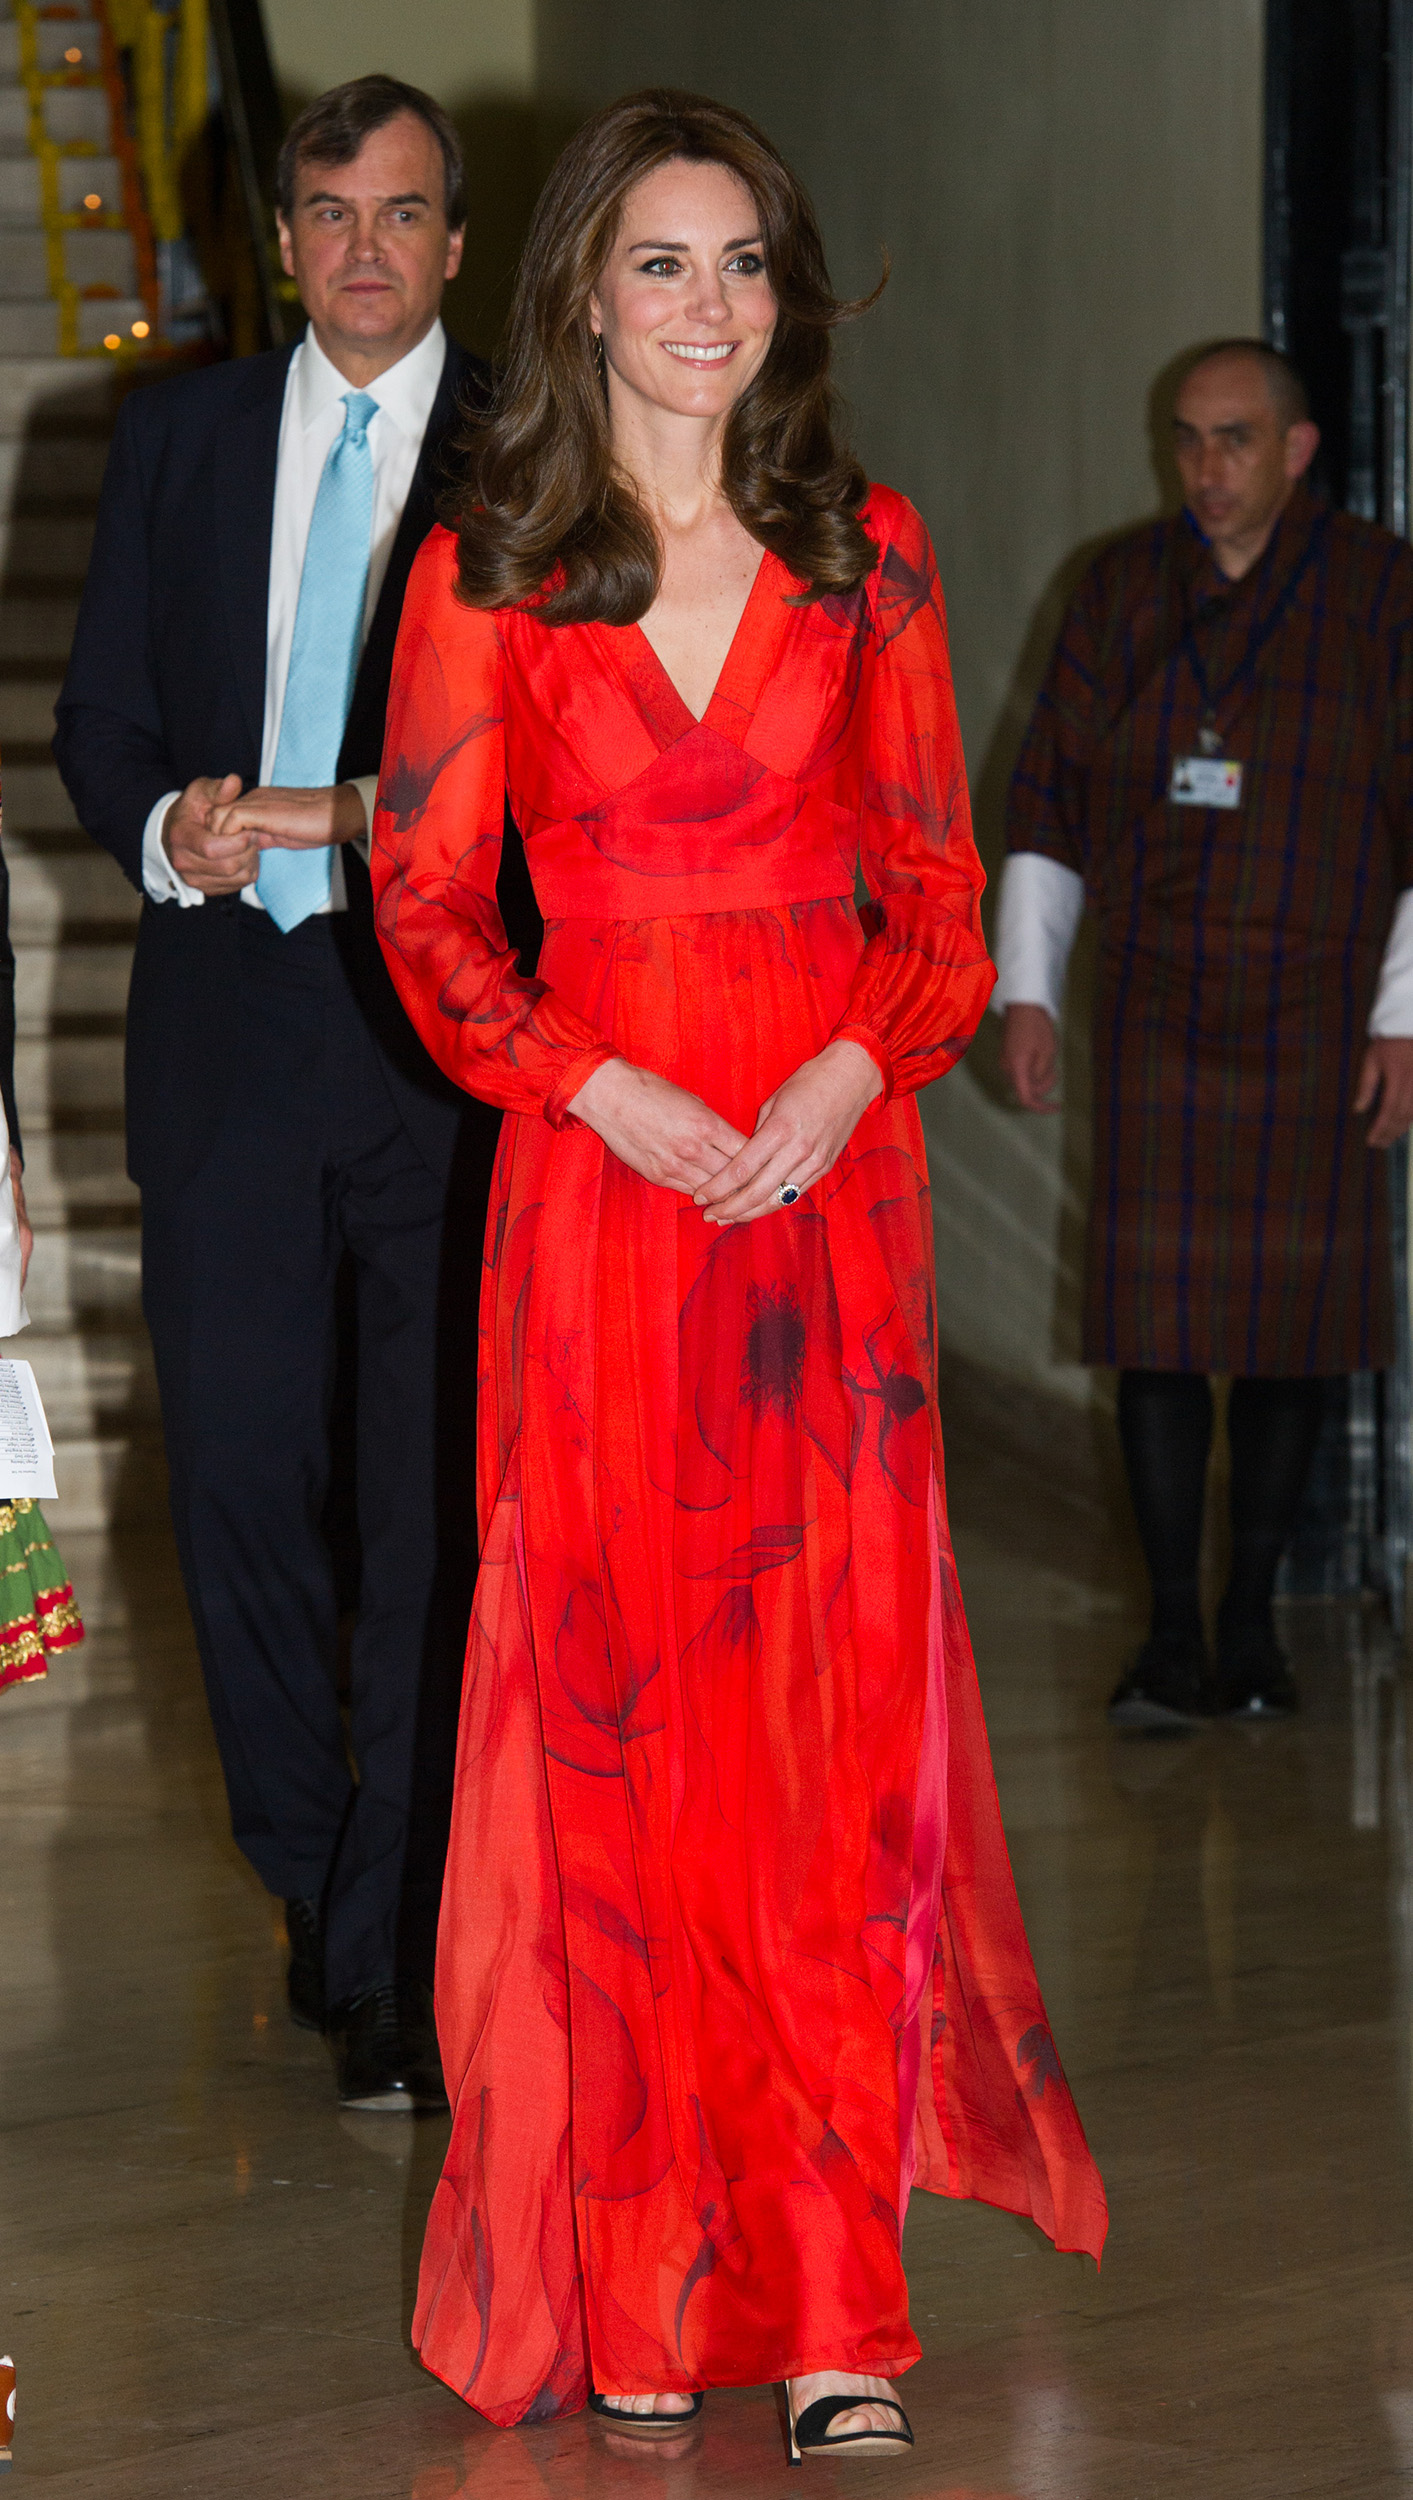 Catherine, Duchess of Cambridge attends a reception for British nationals in Bhutan and Bhutanese people with strong links to the UK on April 15, 2016.